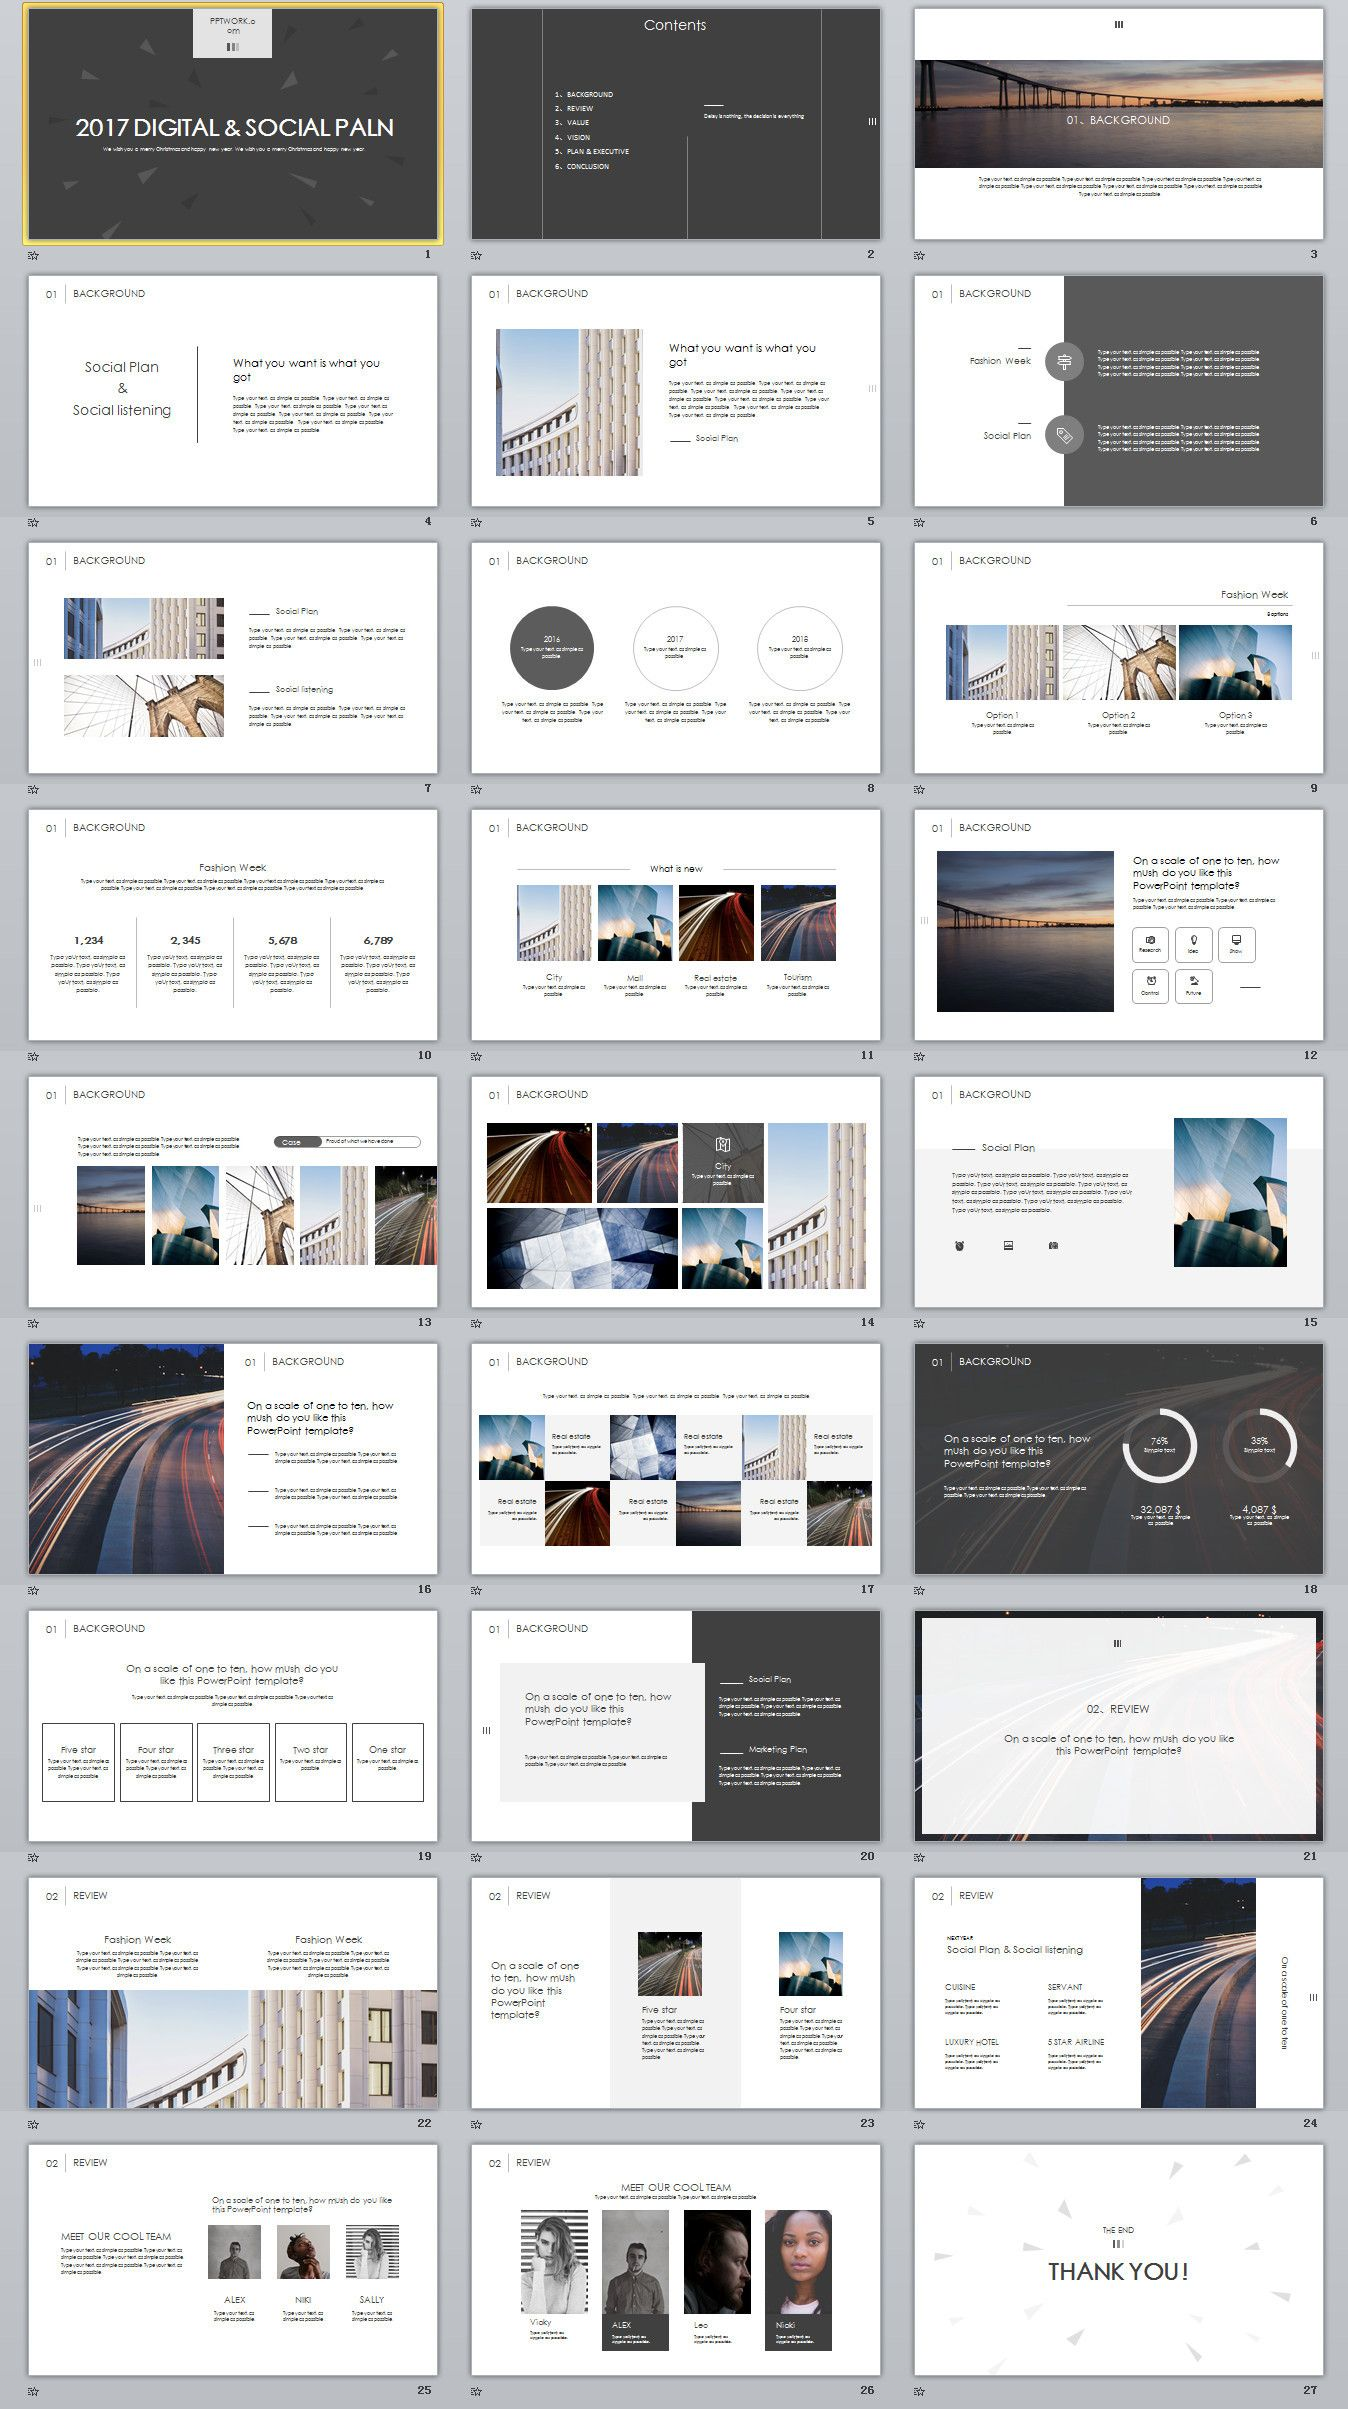 27+ White Social Plan Slides PowerPoint templates on Behance ...